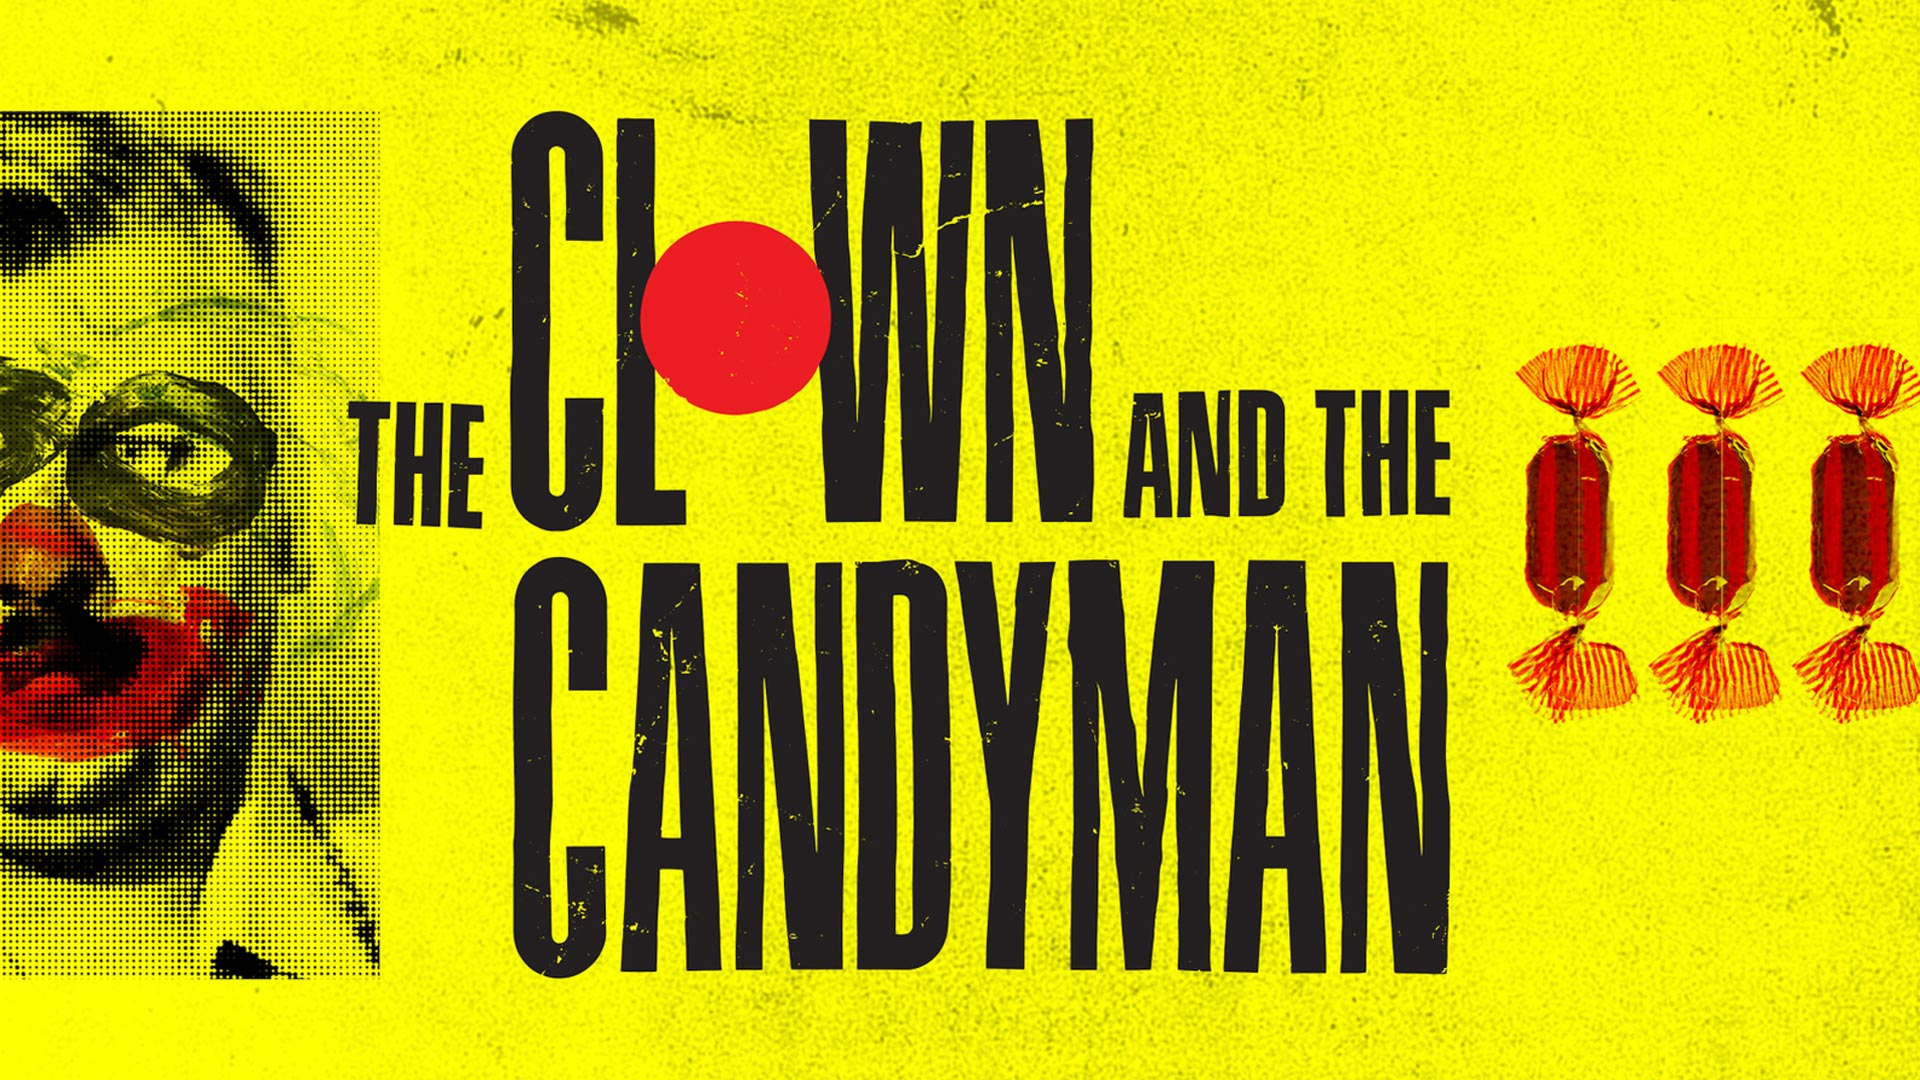 The Clown & The Candyman - Season 1